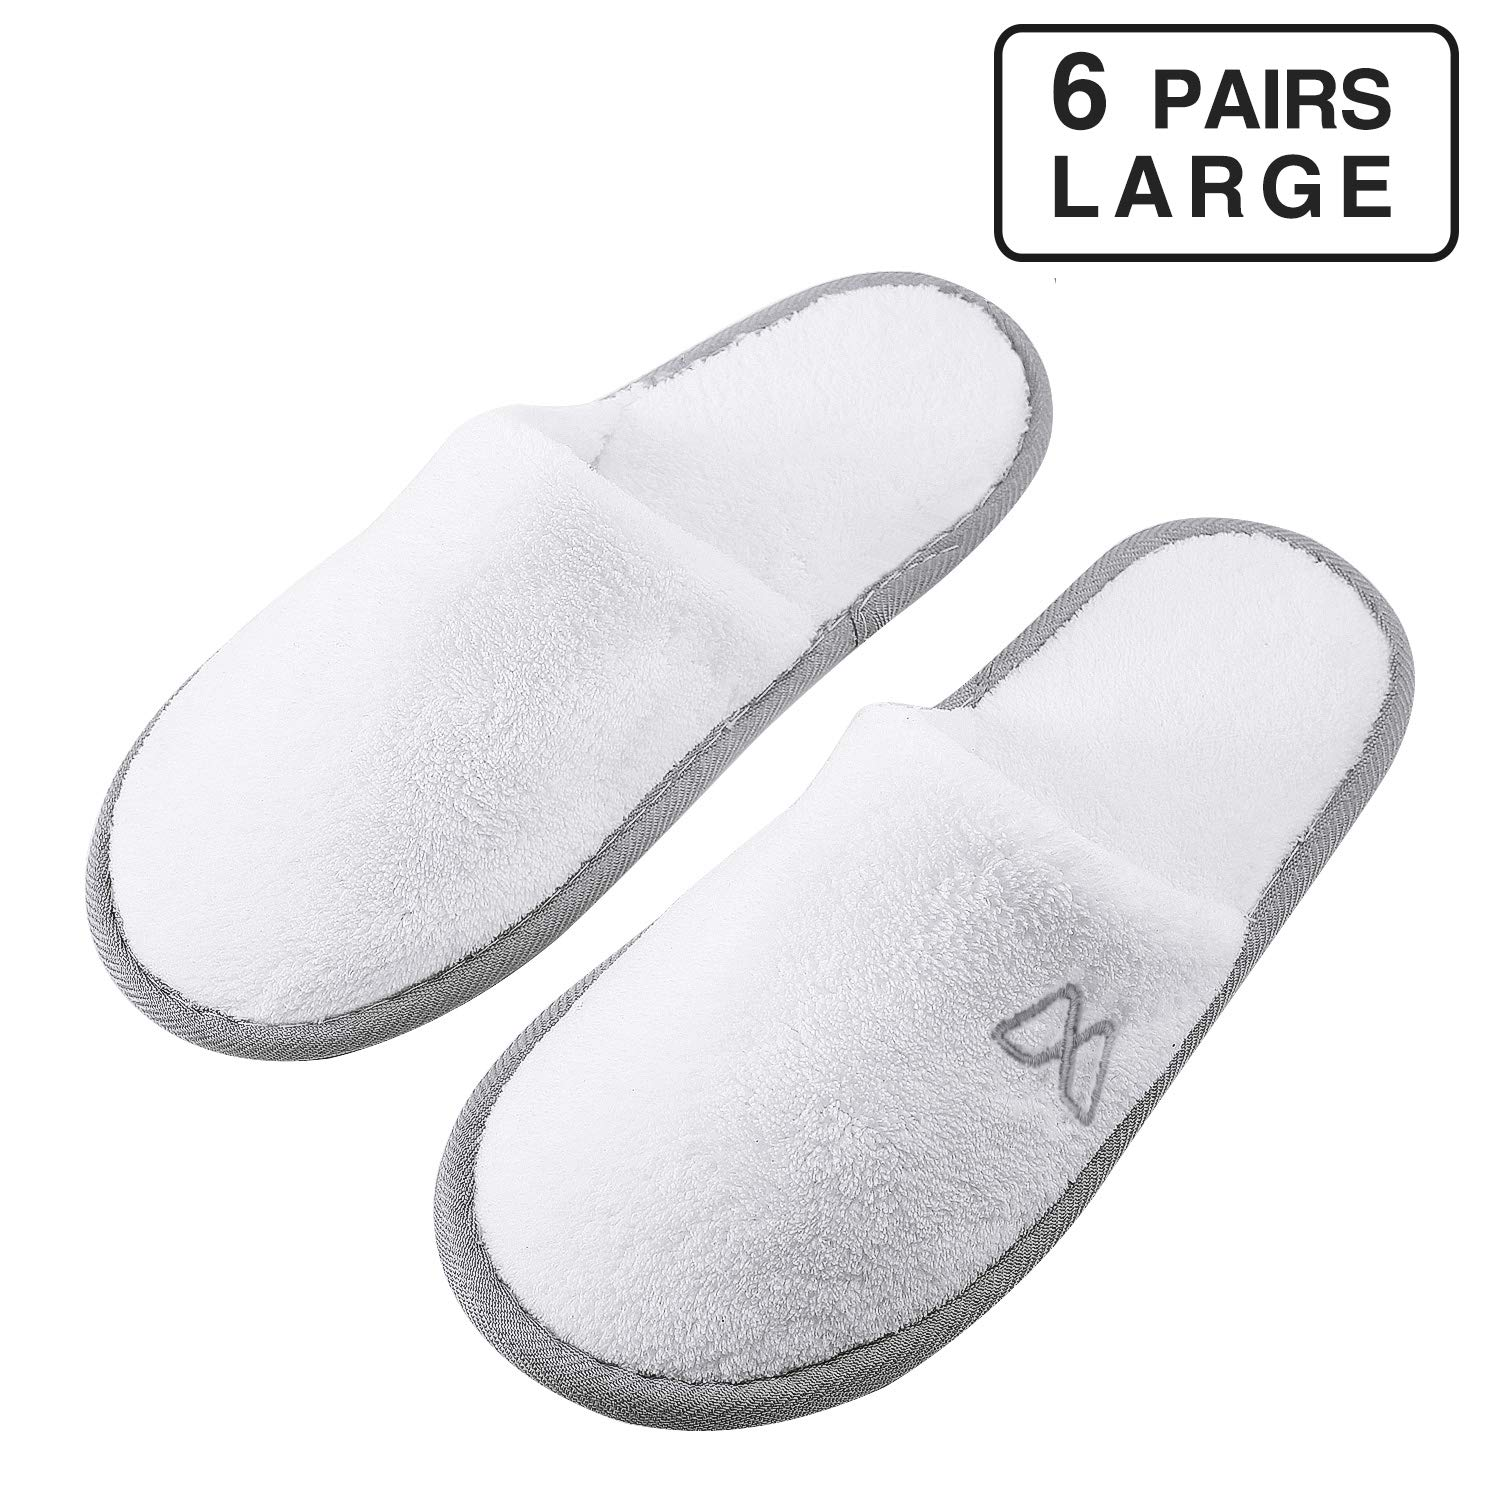 Foorame Spa Slippers, Indoor Hotel Slippers Closed Toe, Disposable for Men and Women, Fluffy Coral Fleece, Deluxe Padded Sole for Extra Comfort (Large Size, 6 Pairs) by Foorame